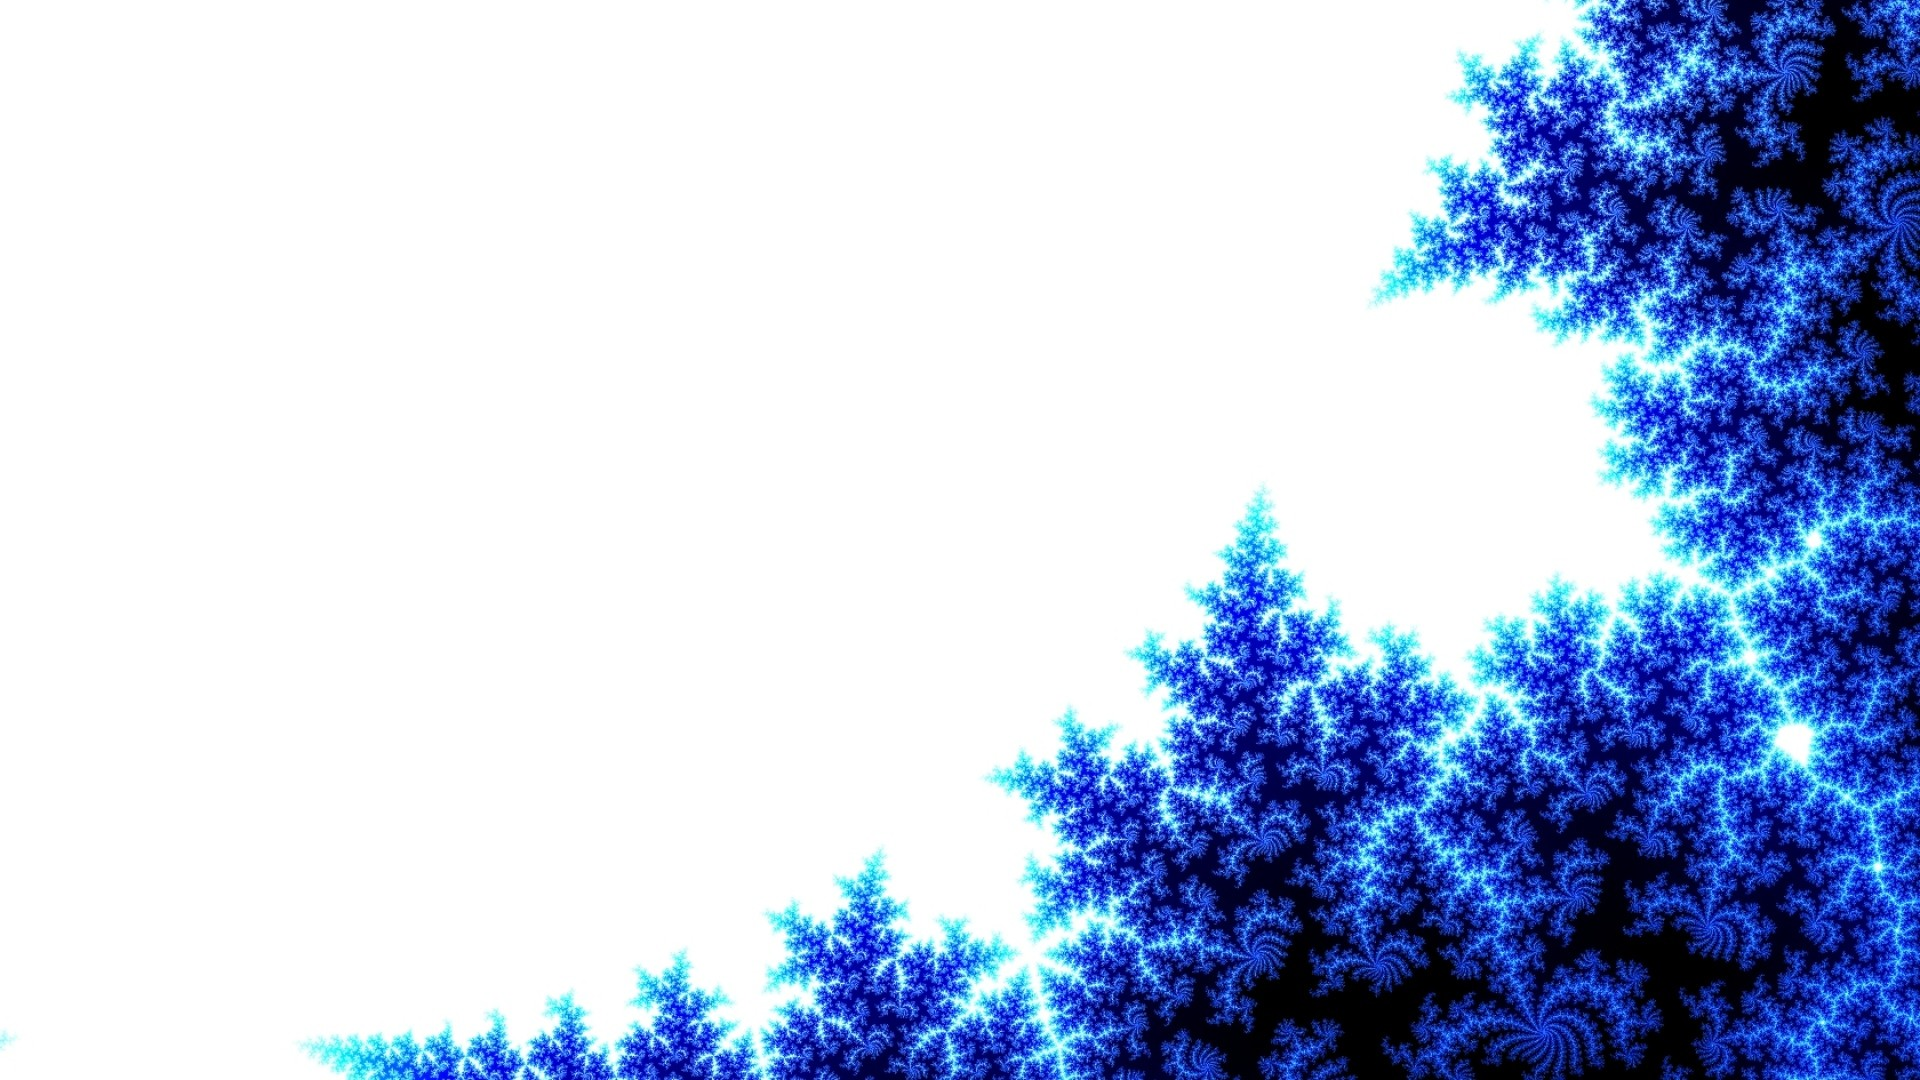 1920x1080  Wallpaper abstract, blue, tree, white